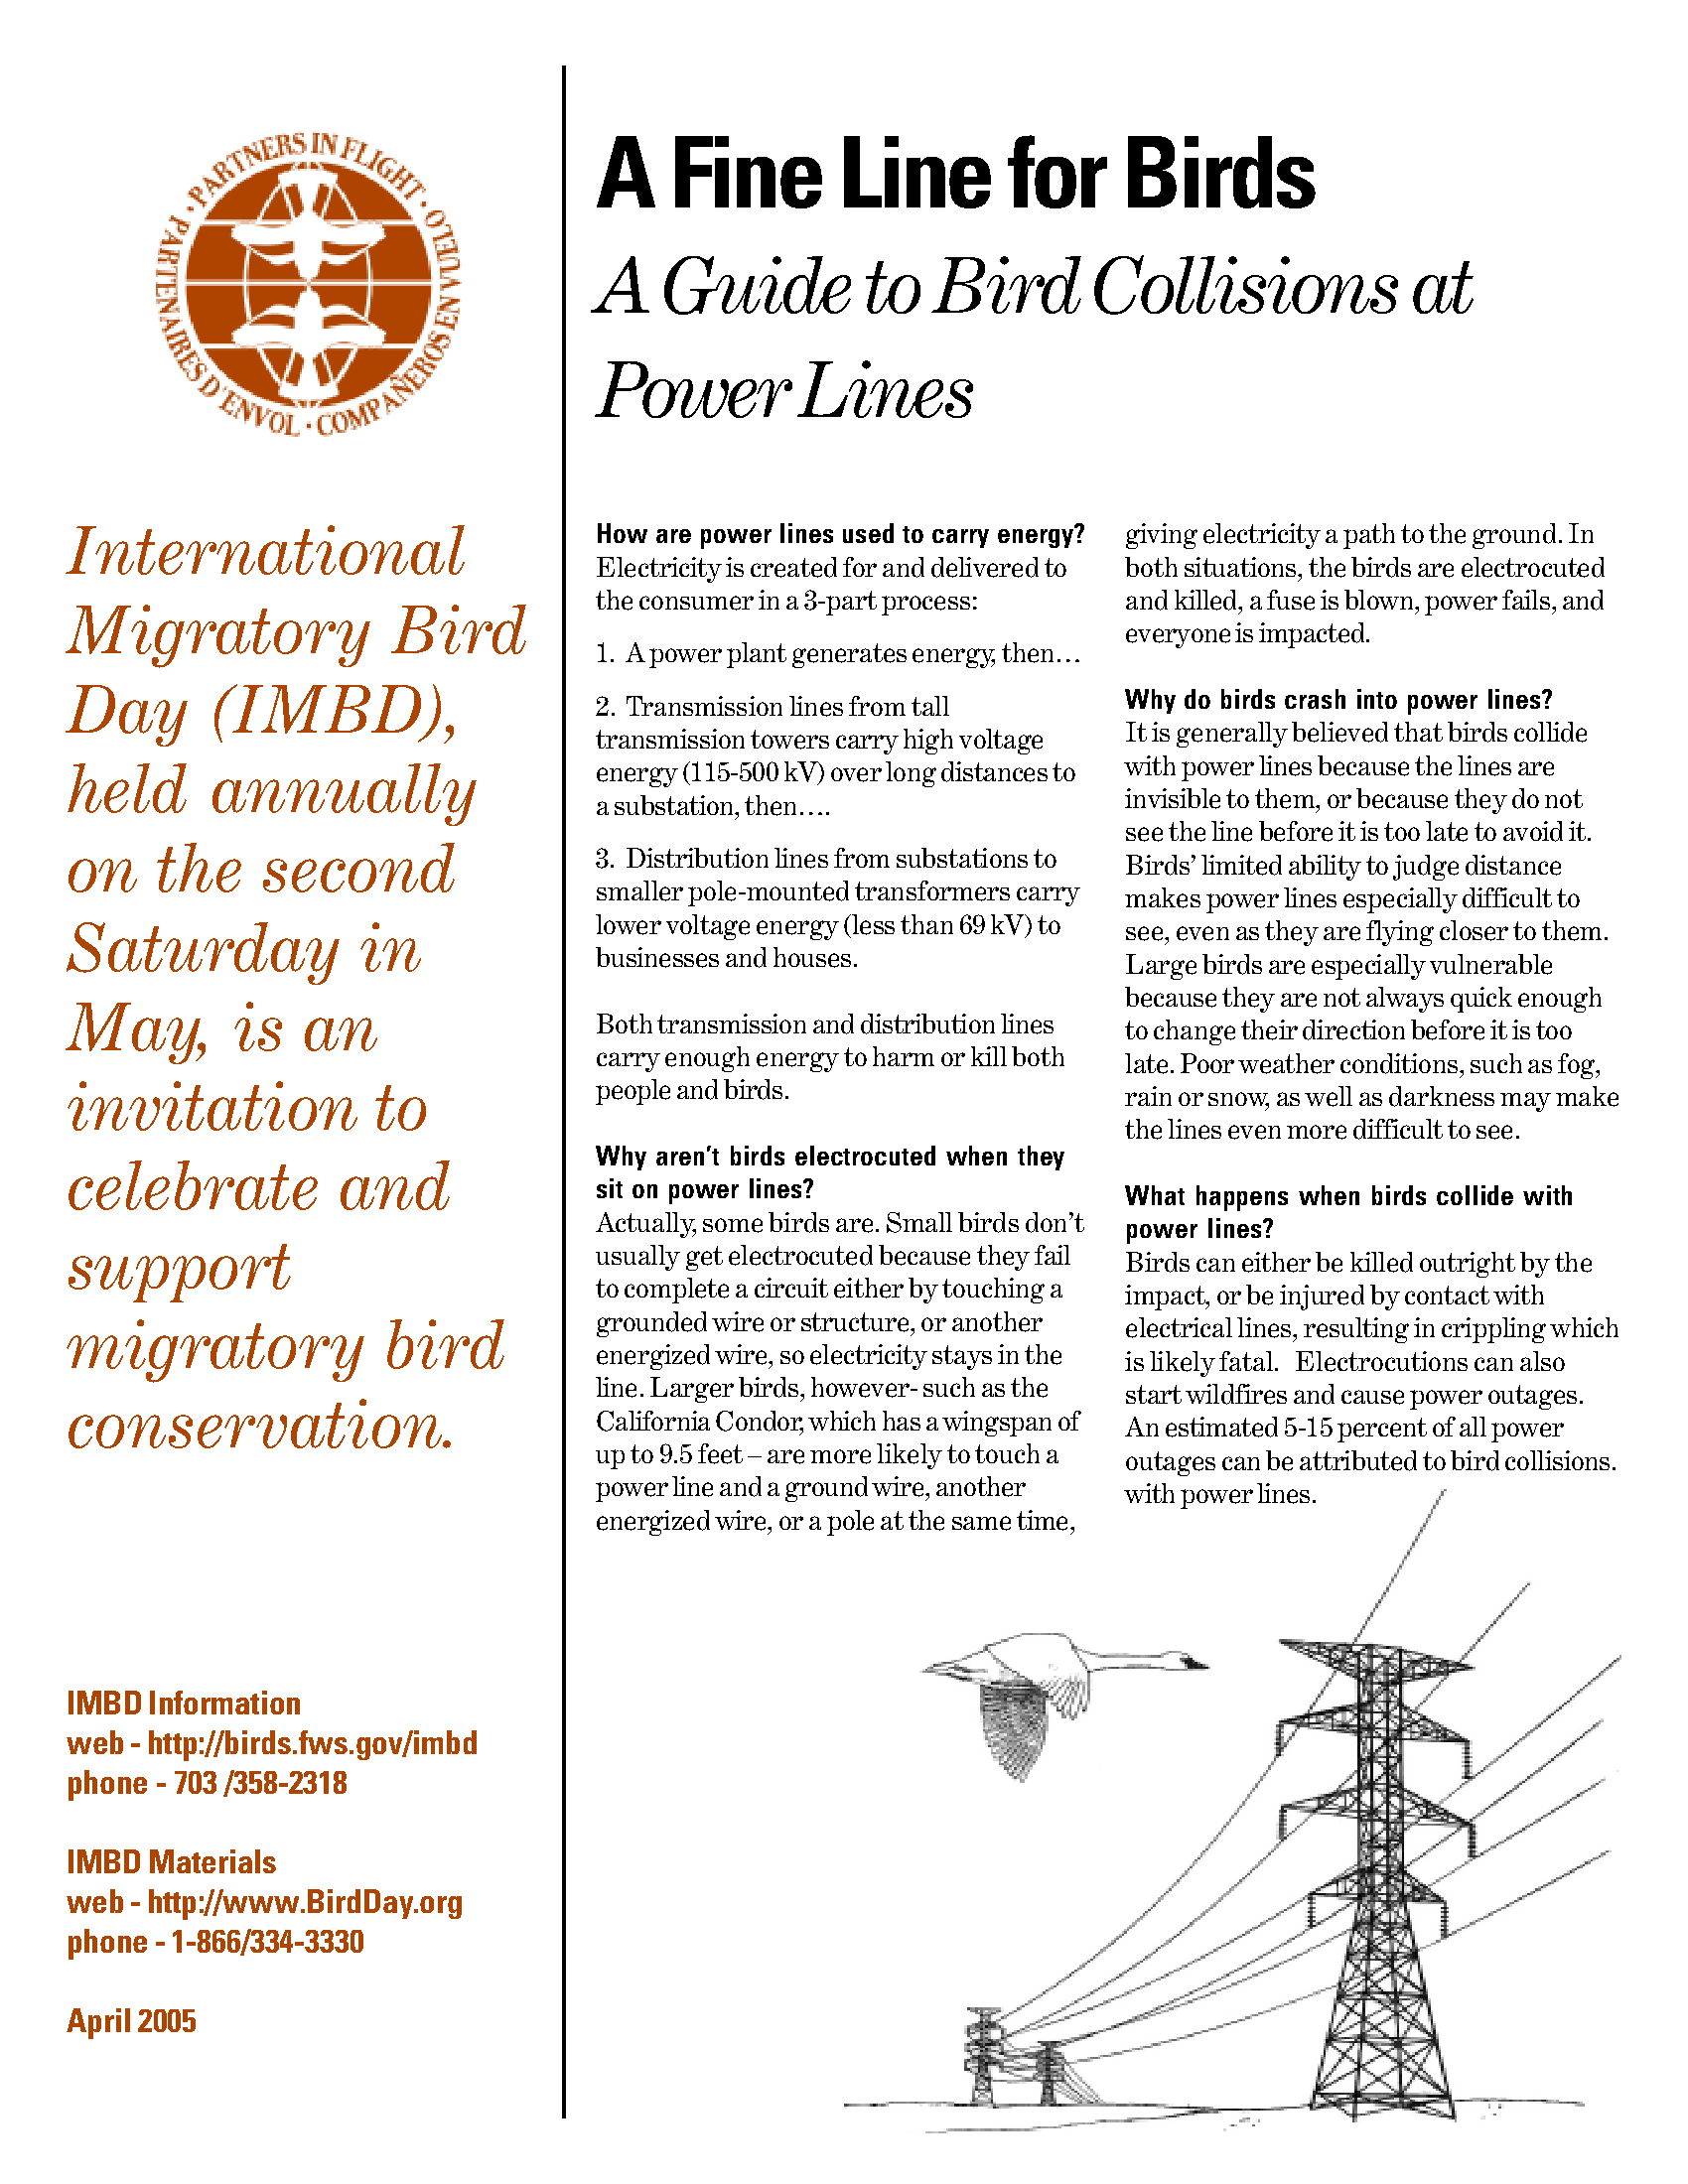 A fine line for birds: a guide to bird collisions at power